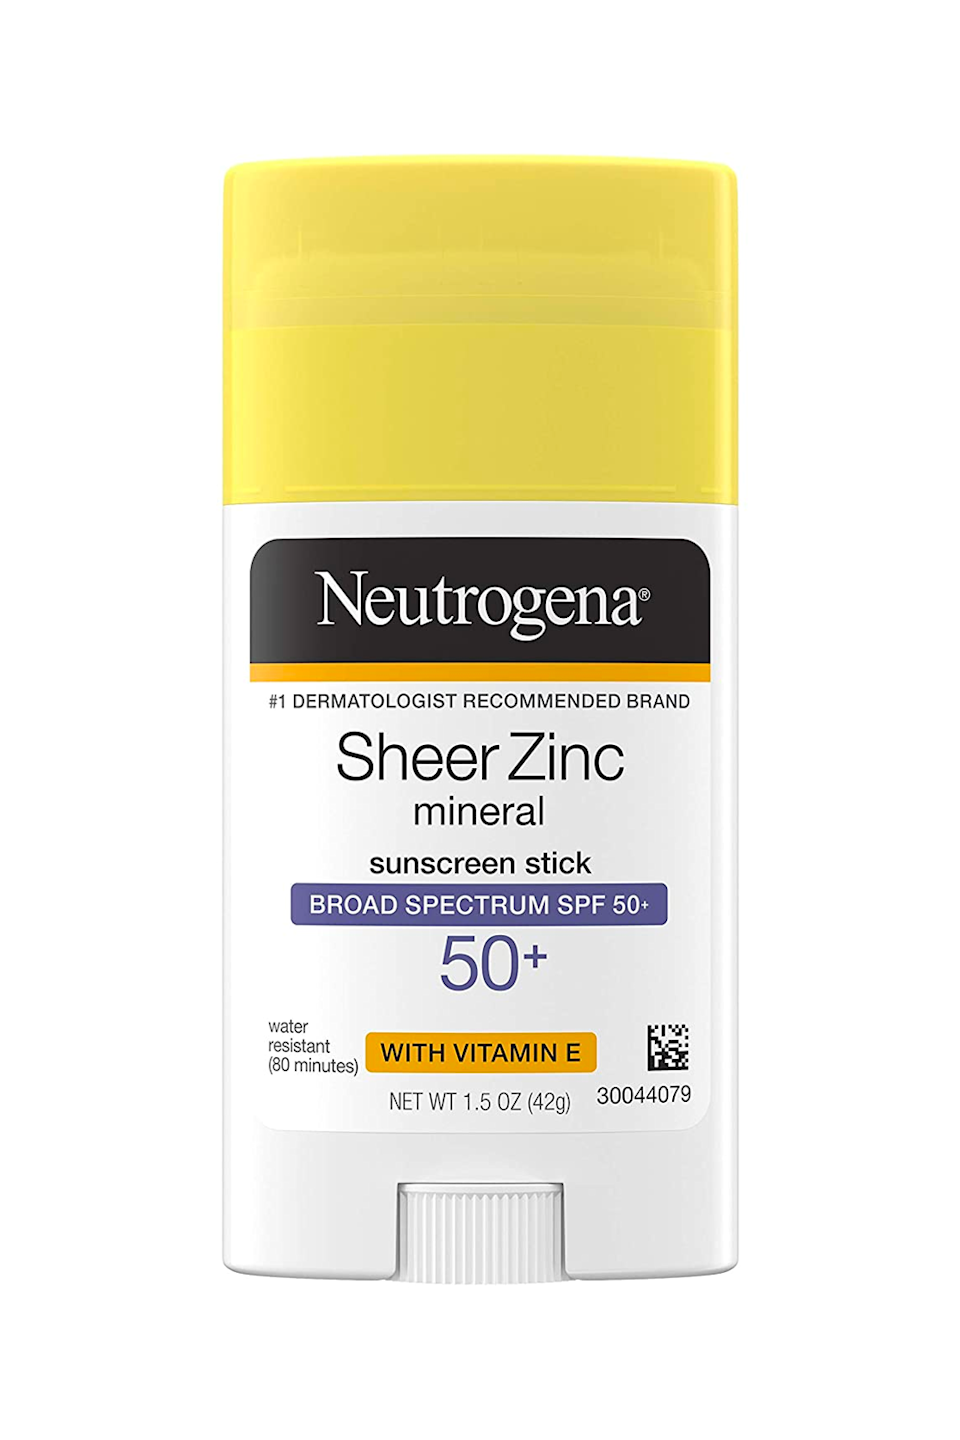 """<p><strong>Neutrogena</strong></p><p>amazon.com</p><p><strong>$12.97</strong></p><p><a href=""""https://www.amazon.com/dp/B07YH19JQW?tag=syn-yahoo-20&ascsubtag=%5Bartid%7C10049.g.35993297%5Bsrc%7Cyahoo-us"""" rel=""""nofollow noopener"""" target=""""_blank"""" data-ylk=""""slk:Shop Now"""" class=""""link rapid-noclick-resp"""">Shop Now</a></p><p>This convenient little sunscreen stick offers gentle—but effective!—sun protection (shout out to the formula's zinc oxide) and a sheer, <strong>lightweight finish that legit <em>glides</em> onto your skin</strong>. It's even spiked with <a href=""""https://www.cosmopolitan.com/style-beauty/beauty/a27609307/vitamin-e-for-skin-benefits-products/"""" rel=""""nofollow noopener"""" target=""""_blank"""" data-ylk=""""slk:vitamin E"""" class=""""link rapid-noclick-resp"""">vitamin E</a>, so you get a nice dose of hydration too. Not bad for $12.</p>"""